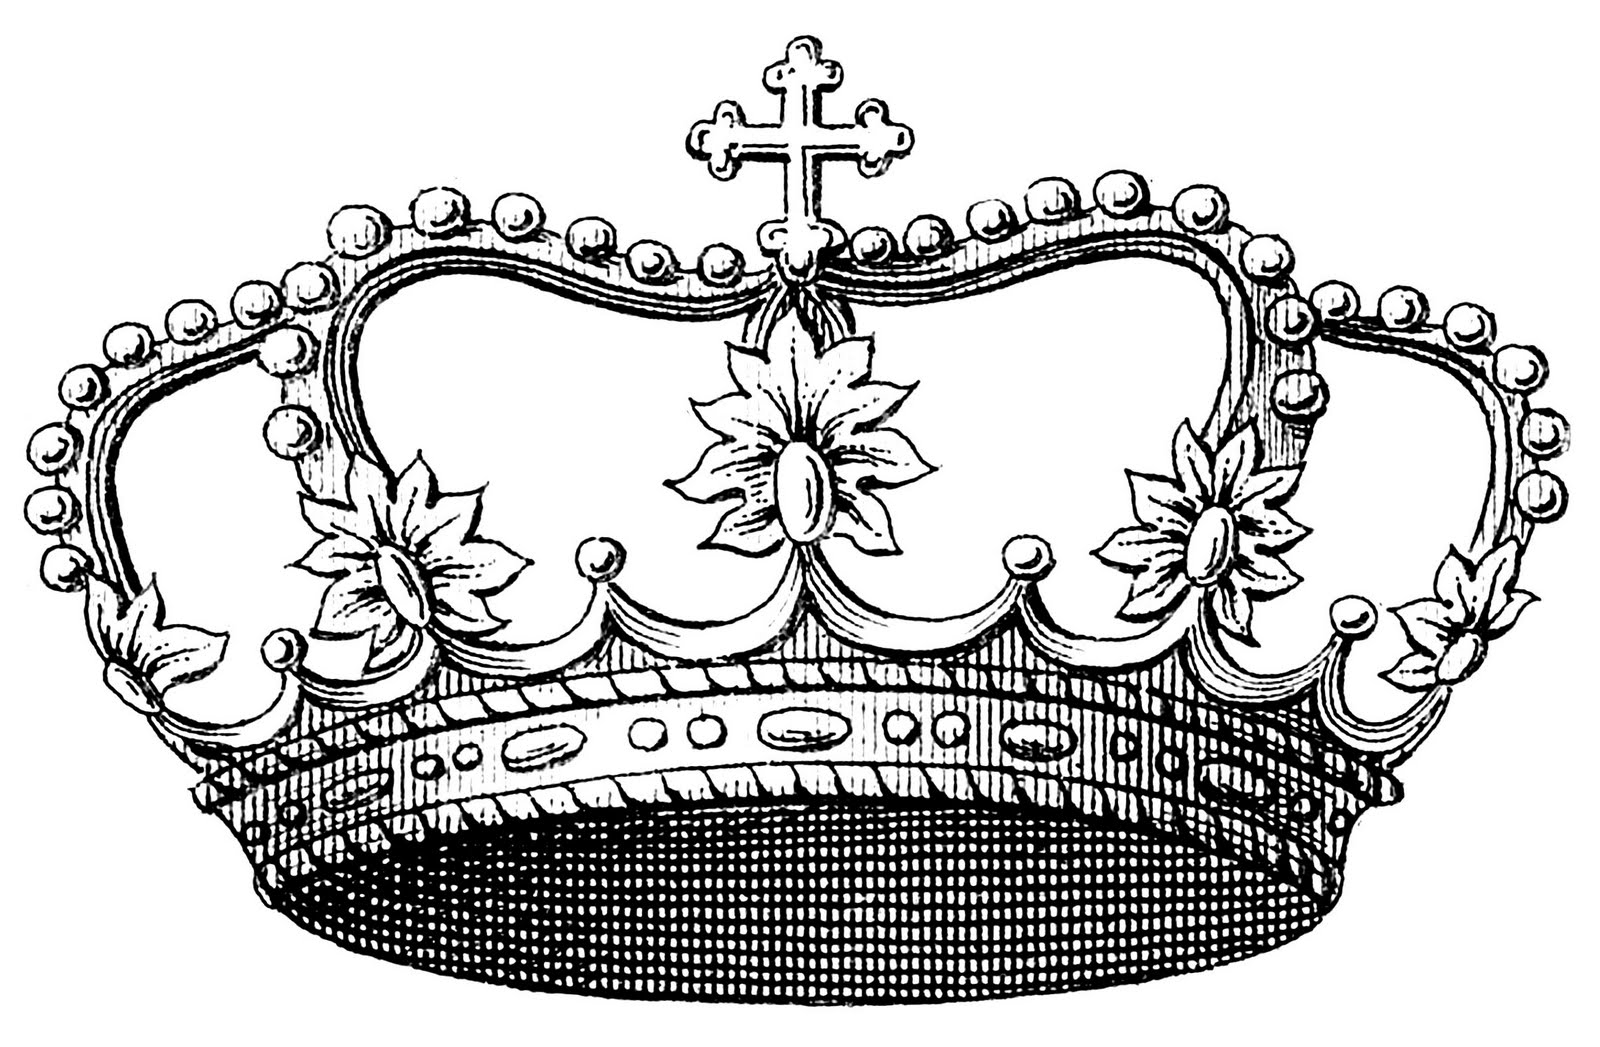 Queen crowns clipart png freeuse Queen crown clipart kid 6 - ClipartBarn png freeuse